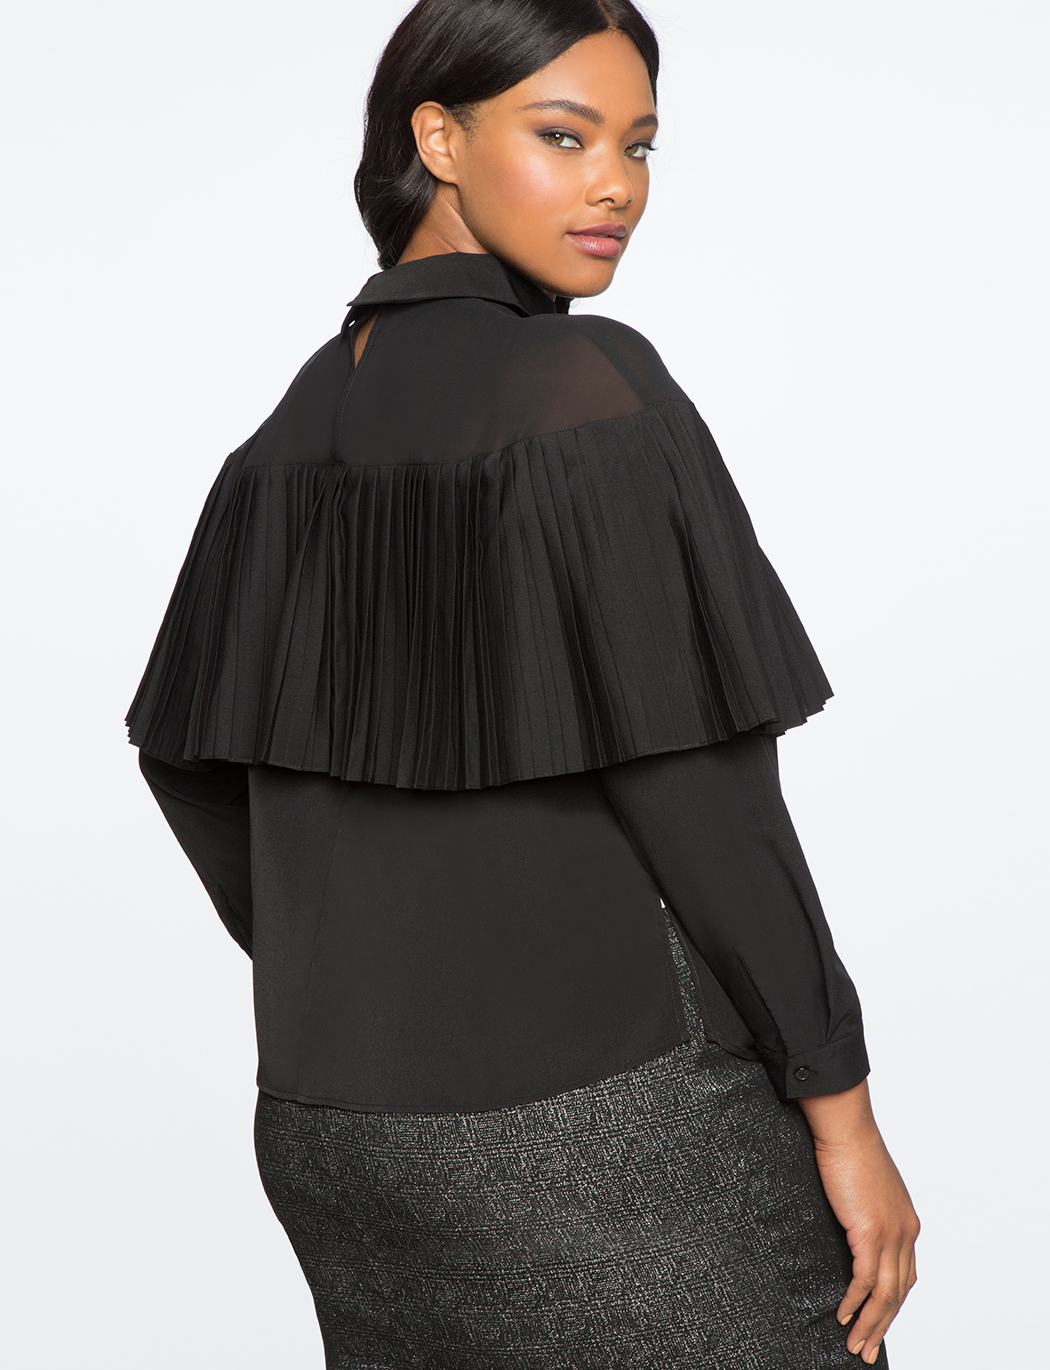 Mesh Yoke Collar Top